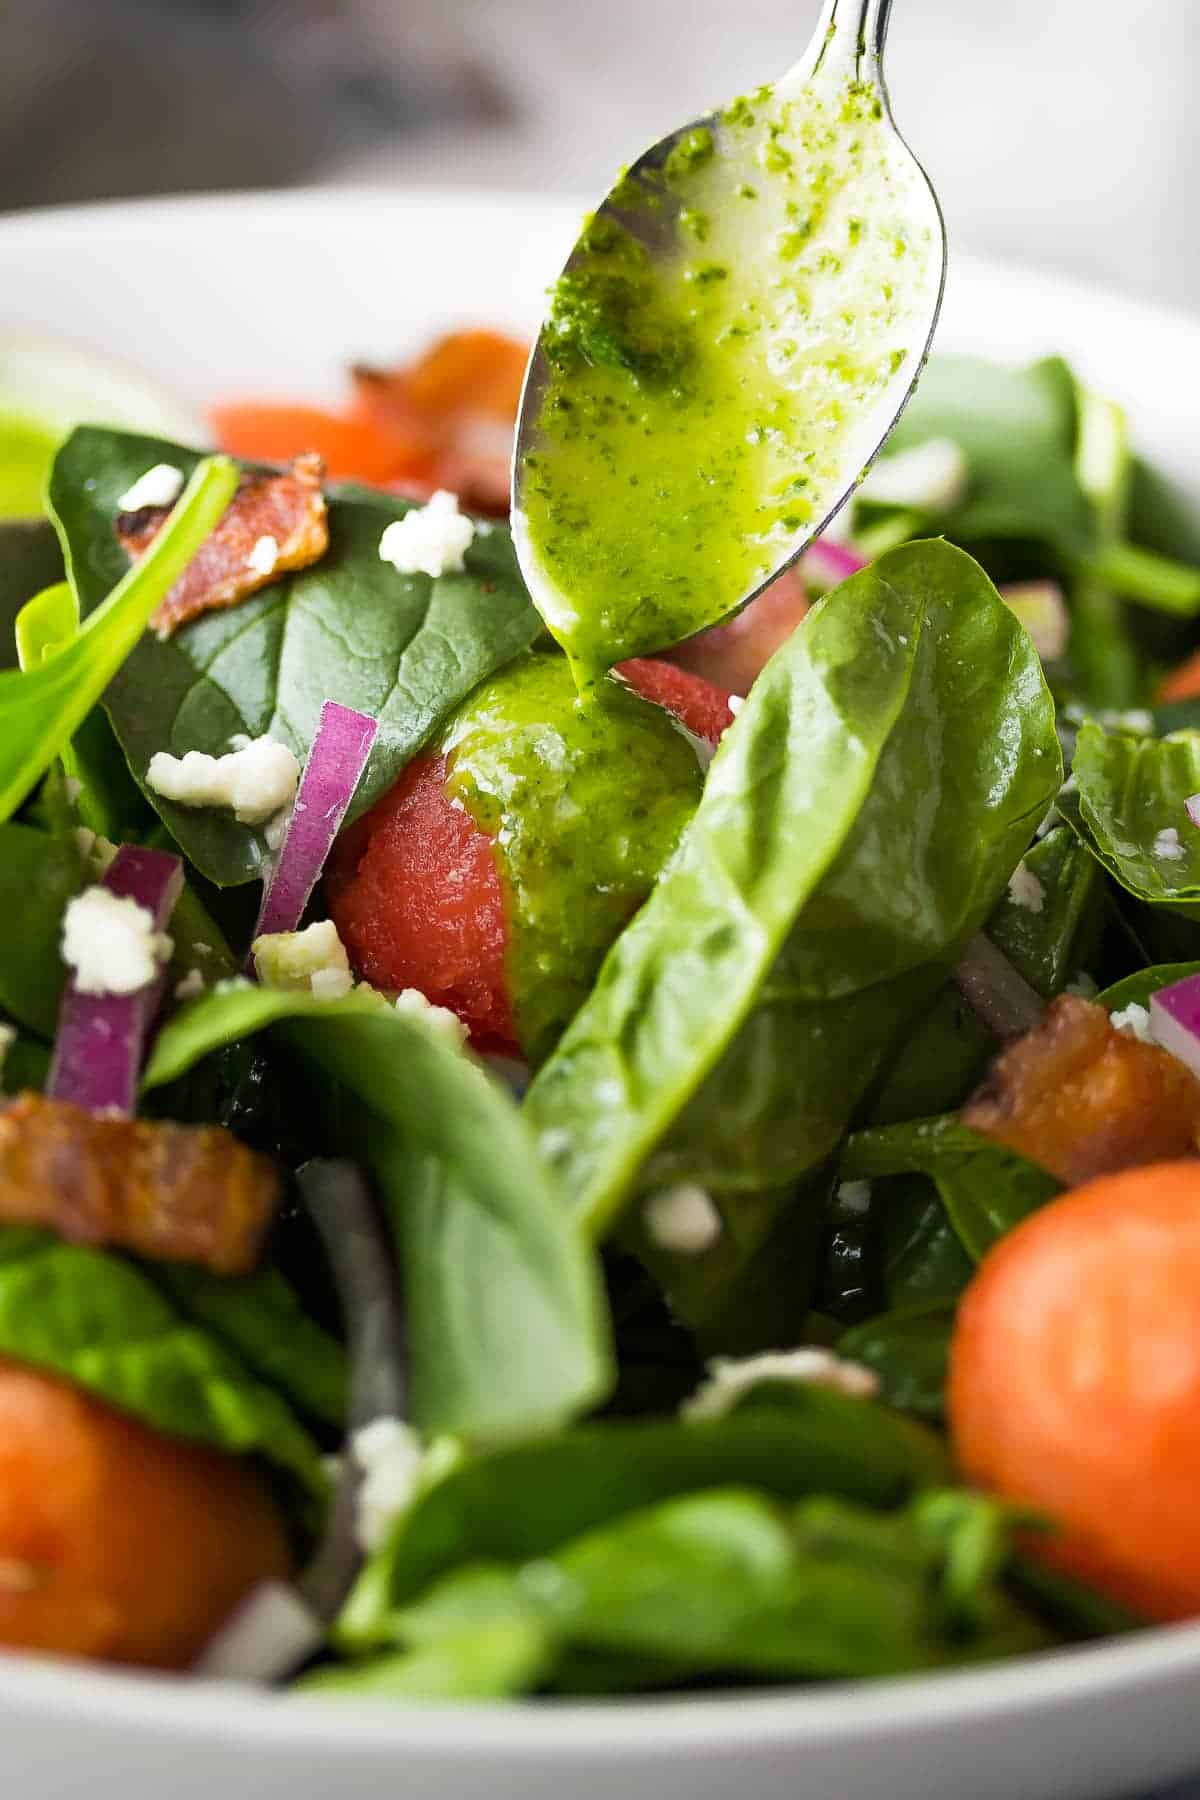 Bacon and Watermelon Spinach Salad with Basil Vinaigrette